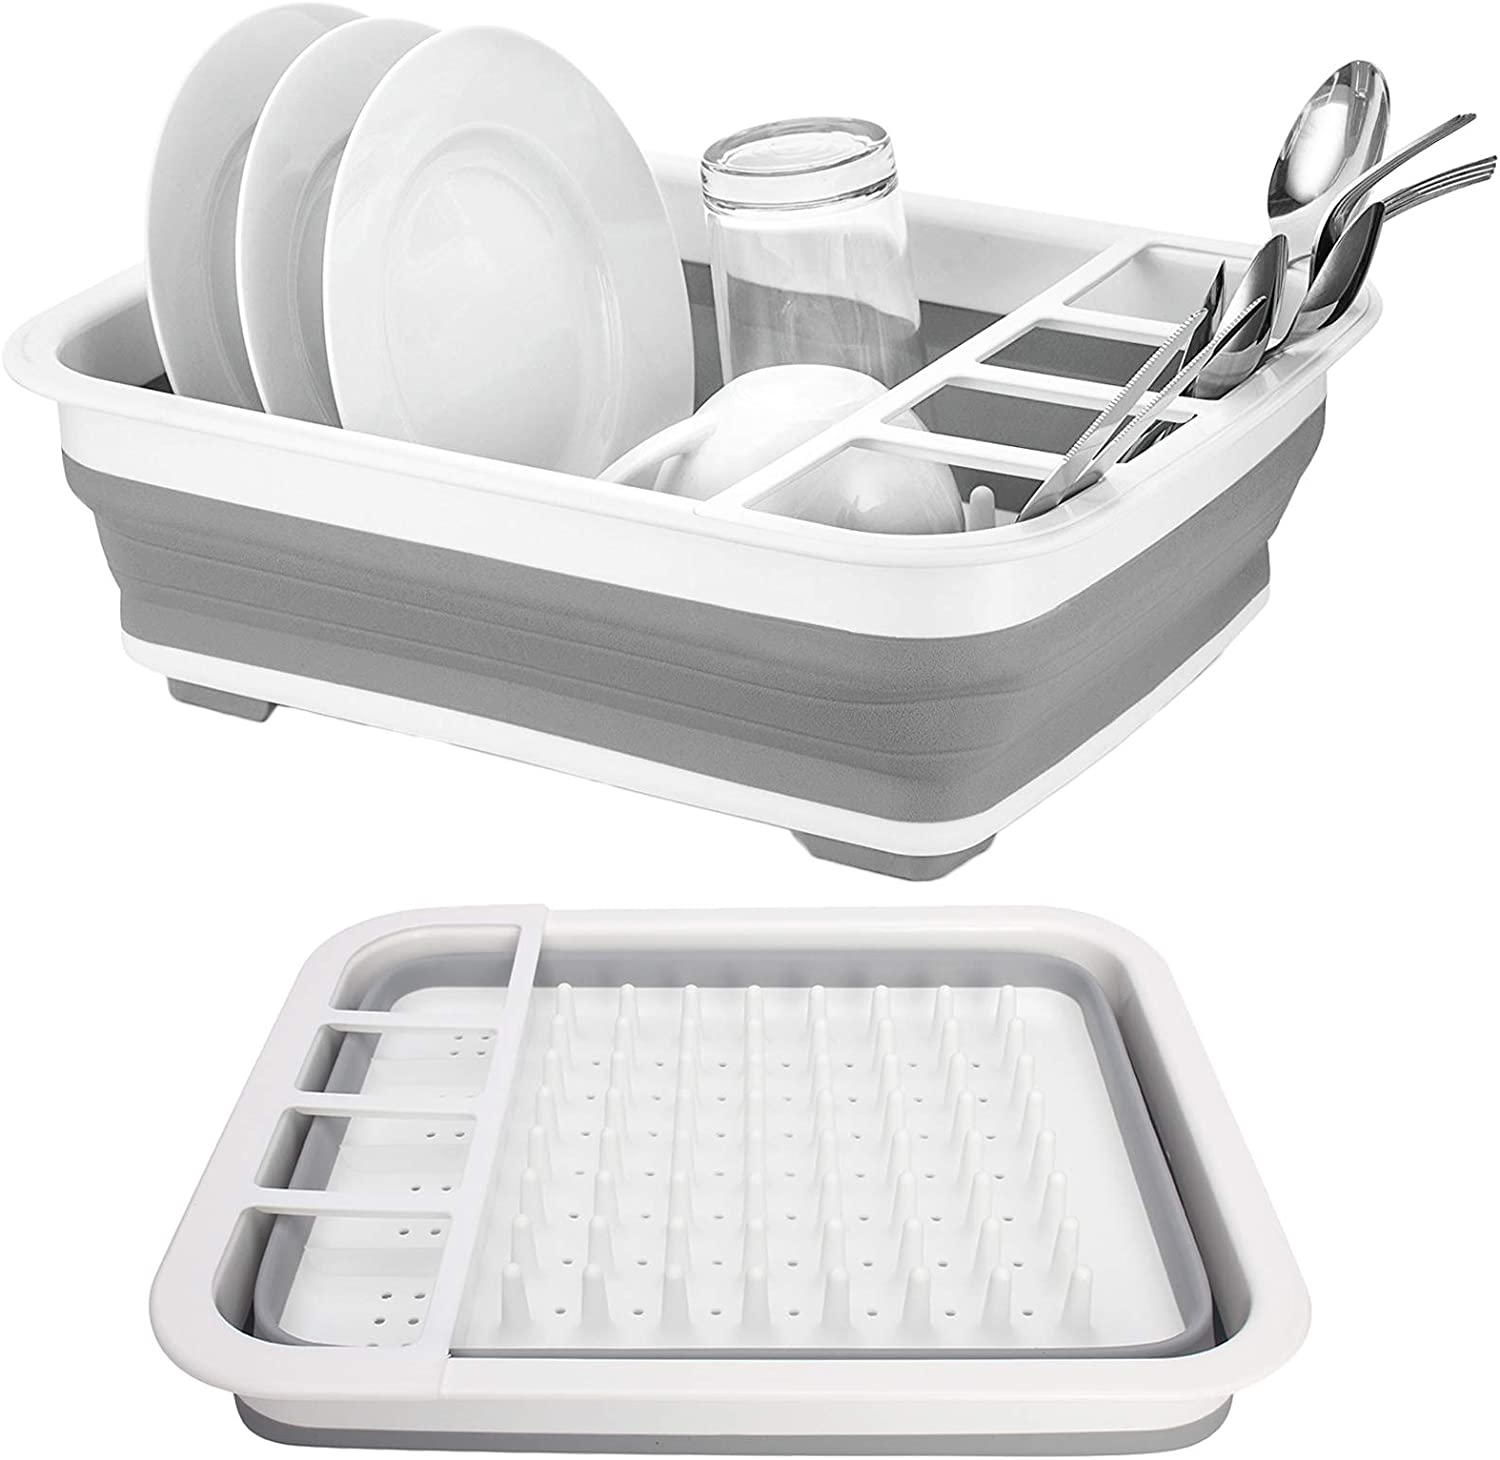 2021 new Collapsible Drying Ultra-Cheap Deals Dish Storage Rack Saving Folding Gray D Space